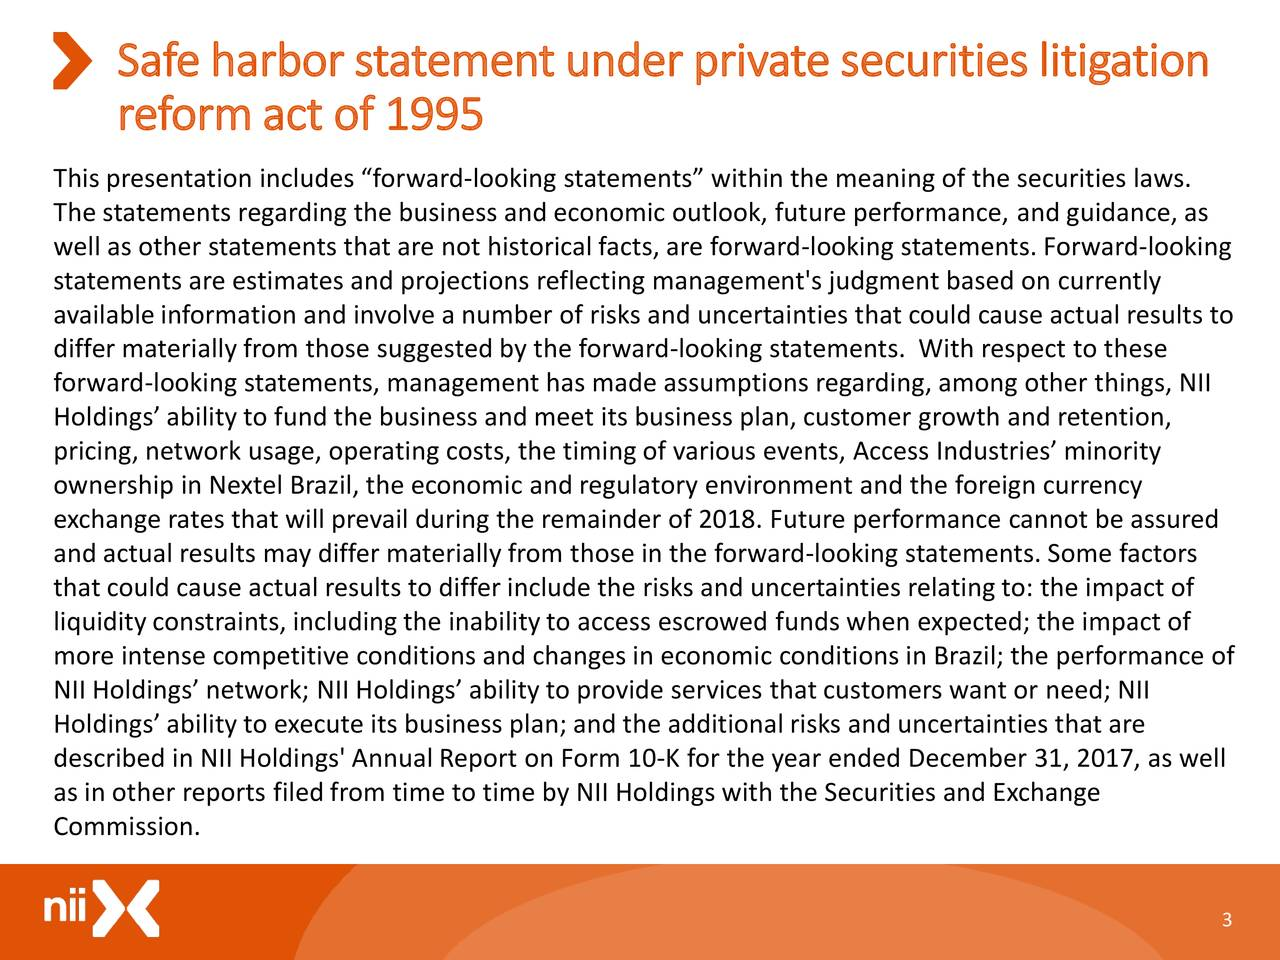 """reformact of 1995 This presentation includes """"forward-looking statements"""" within the meaning of the securities laws. The statements regarding the business and economic outlook, future performance, and guidance, as well as other statements that are not historical facts, are forward-looking statements. Forward-looking statements are estimates and projections reflecting management's judgment based on currently available information and involve a number of risks and uncertainties that could cause actual results to differ materially from those suggested by the forward-looking statements. With respect to these forward-looking statements, management has made assumptions regarding, among other things,NII Holdings' ability to fund the business and meet its business plan, customer growth and retention, pricing, network usage, operating costs, the timing of various events, Access Industries' minority ownership in Nextel Brazil, the economic and regulatory environment and the foreign currency exchange rates that will prevail during the remainder of 2018. Future performance cannot be assured and actual results may differ materially from those in the forward-looking statements. Some factors that could cause actual results to differ include the risks and uncertainties relating to: the impact of liquidity constraints, including the inability to accessescrowed funds when expected; the impact of more intense competitive conditions and changes in economic conditions in Brazil; the performance of NII Holdings' network; NII Holdings' ability to provide services that customers want or need; NII Holdings' ability to execute its businessplan; and the additional risks and uncertainties that are described in NII Holdings' Annual Report on Form 10-K for the year ended December 31, 2017, as well as in other reports filed from time to time by NII Holdings with the Securities and Exchange Commission. 3"""